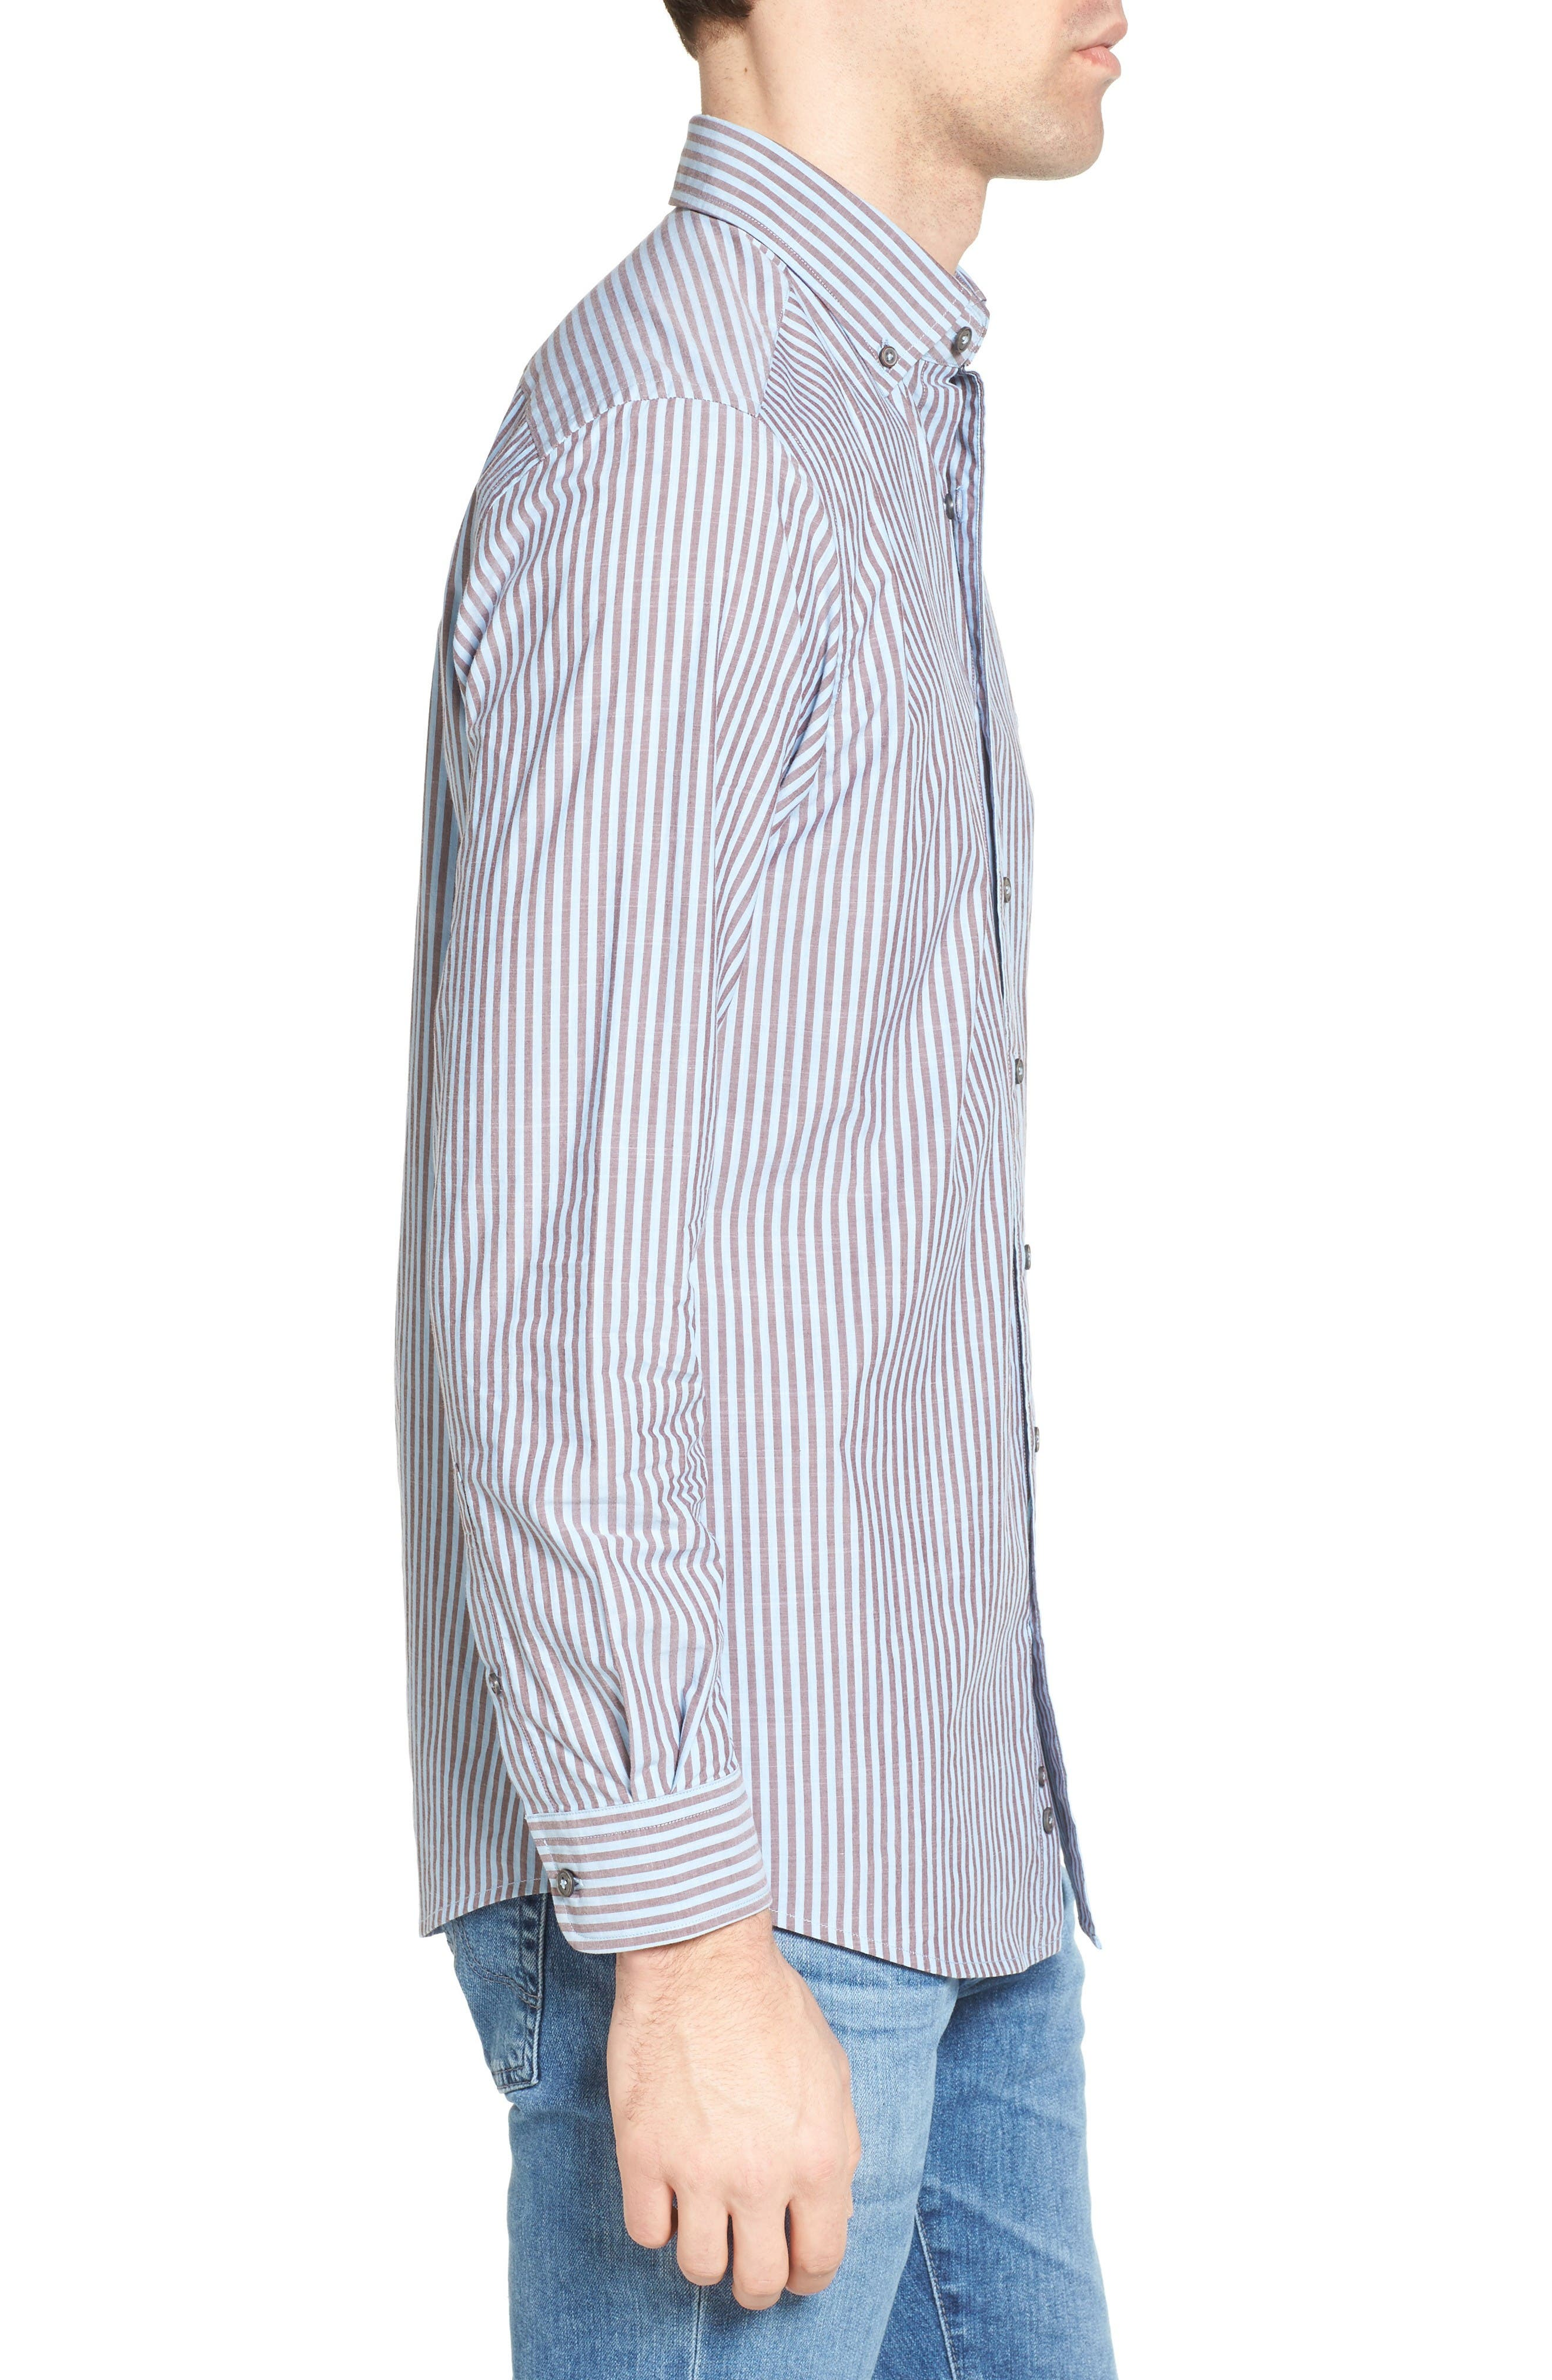 Fitzroy Stripe Sport Shirt,                             Alternate thumbnail 3, color,                             Sky